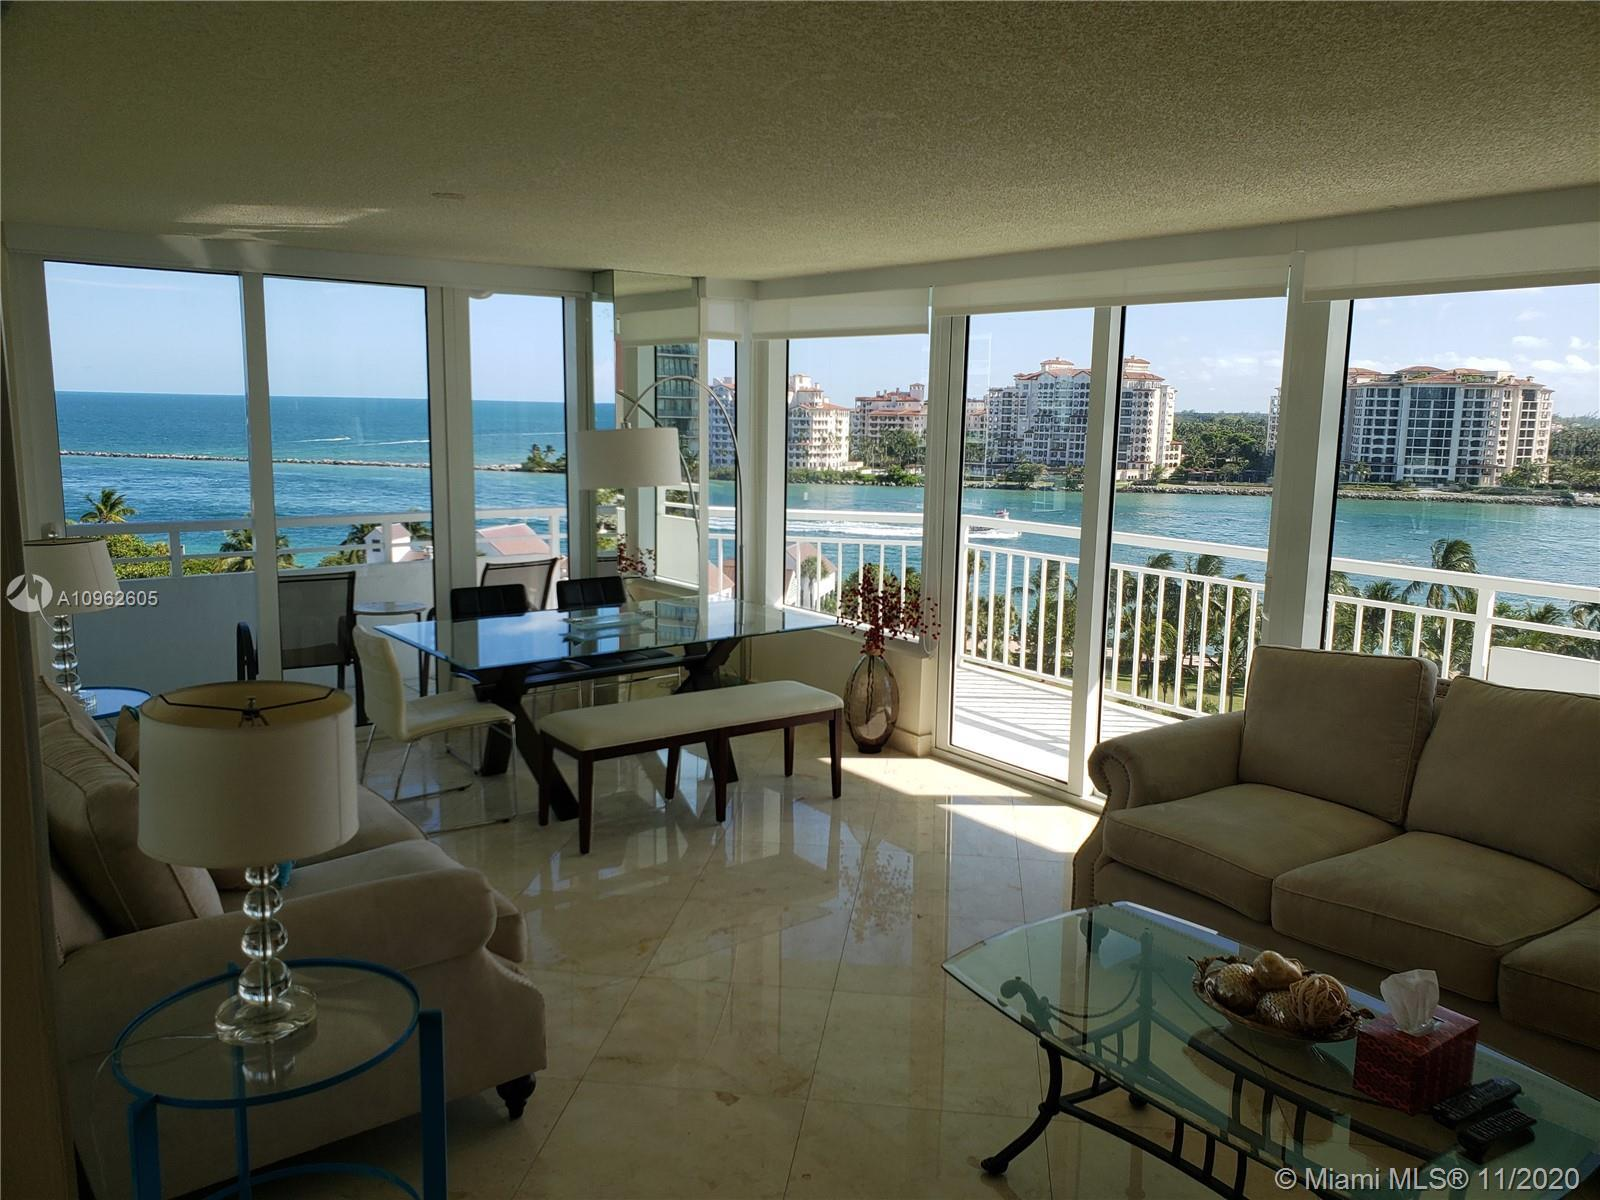 Best Location in South Beach and Best Location in Building S.W. Corner. Magnificent Views of City, O